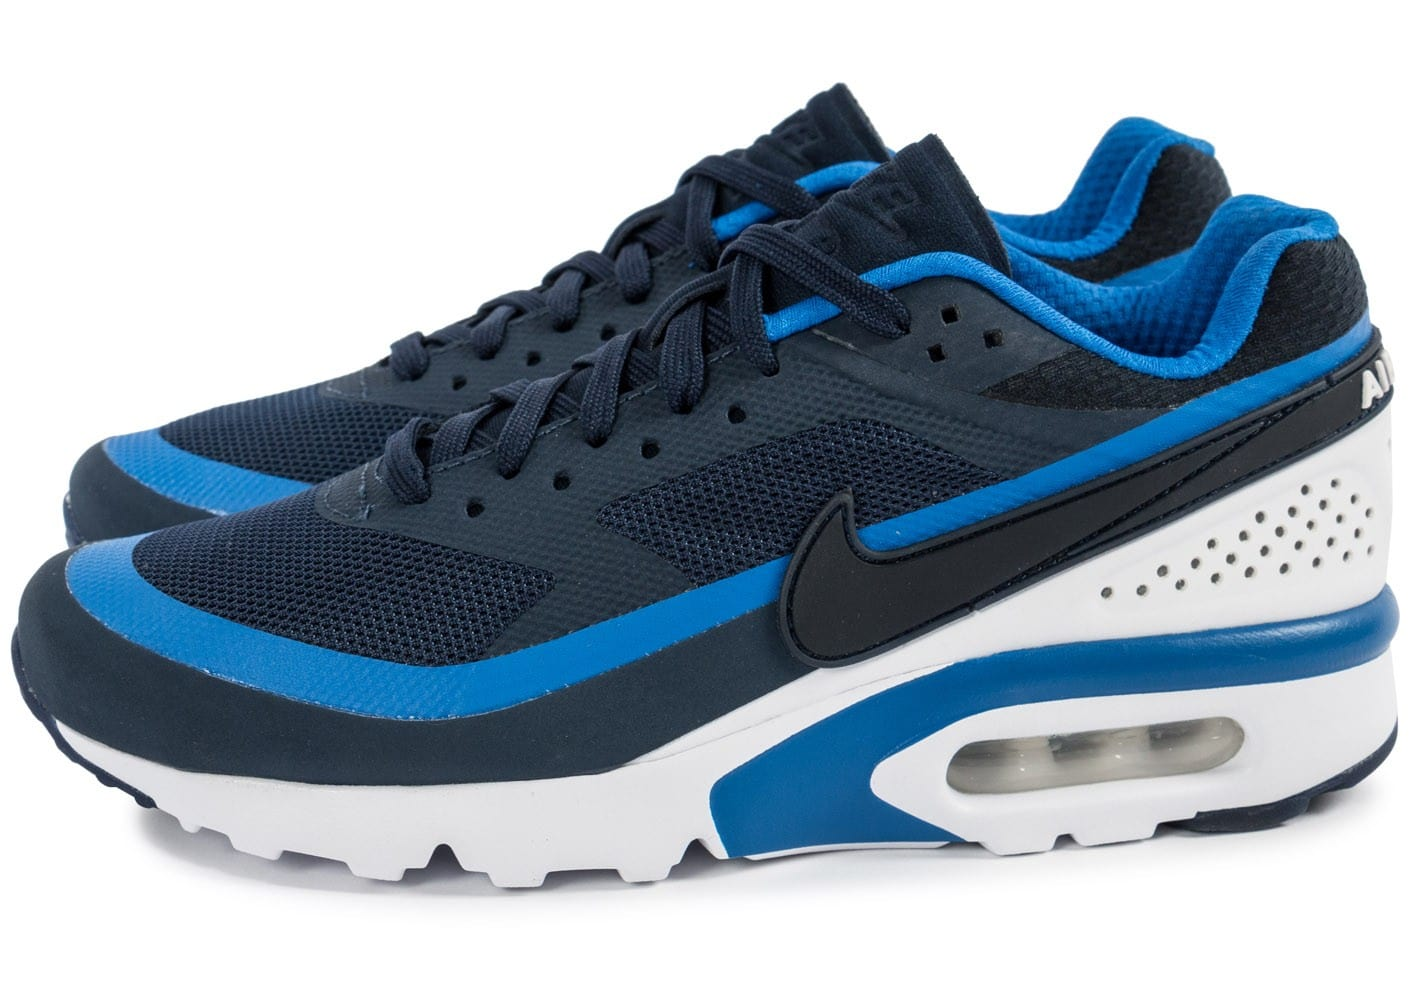 nike air max bw ultra bleu marine chaussures baskets homme chausport. Black Bedroom Furniture Sets. Home Design Ideas